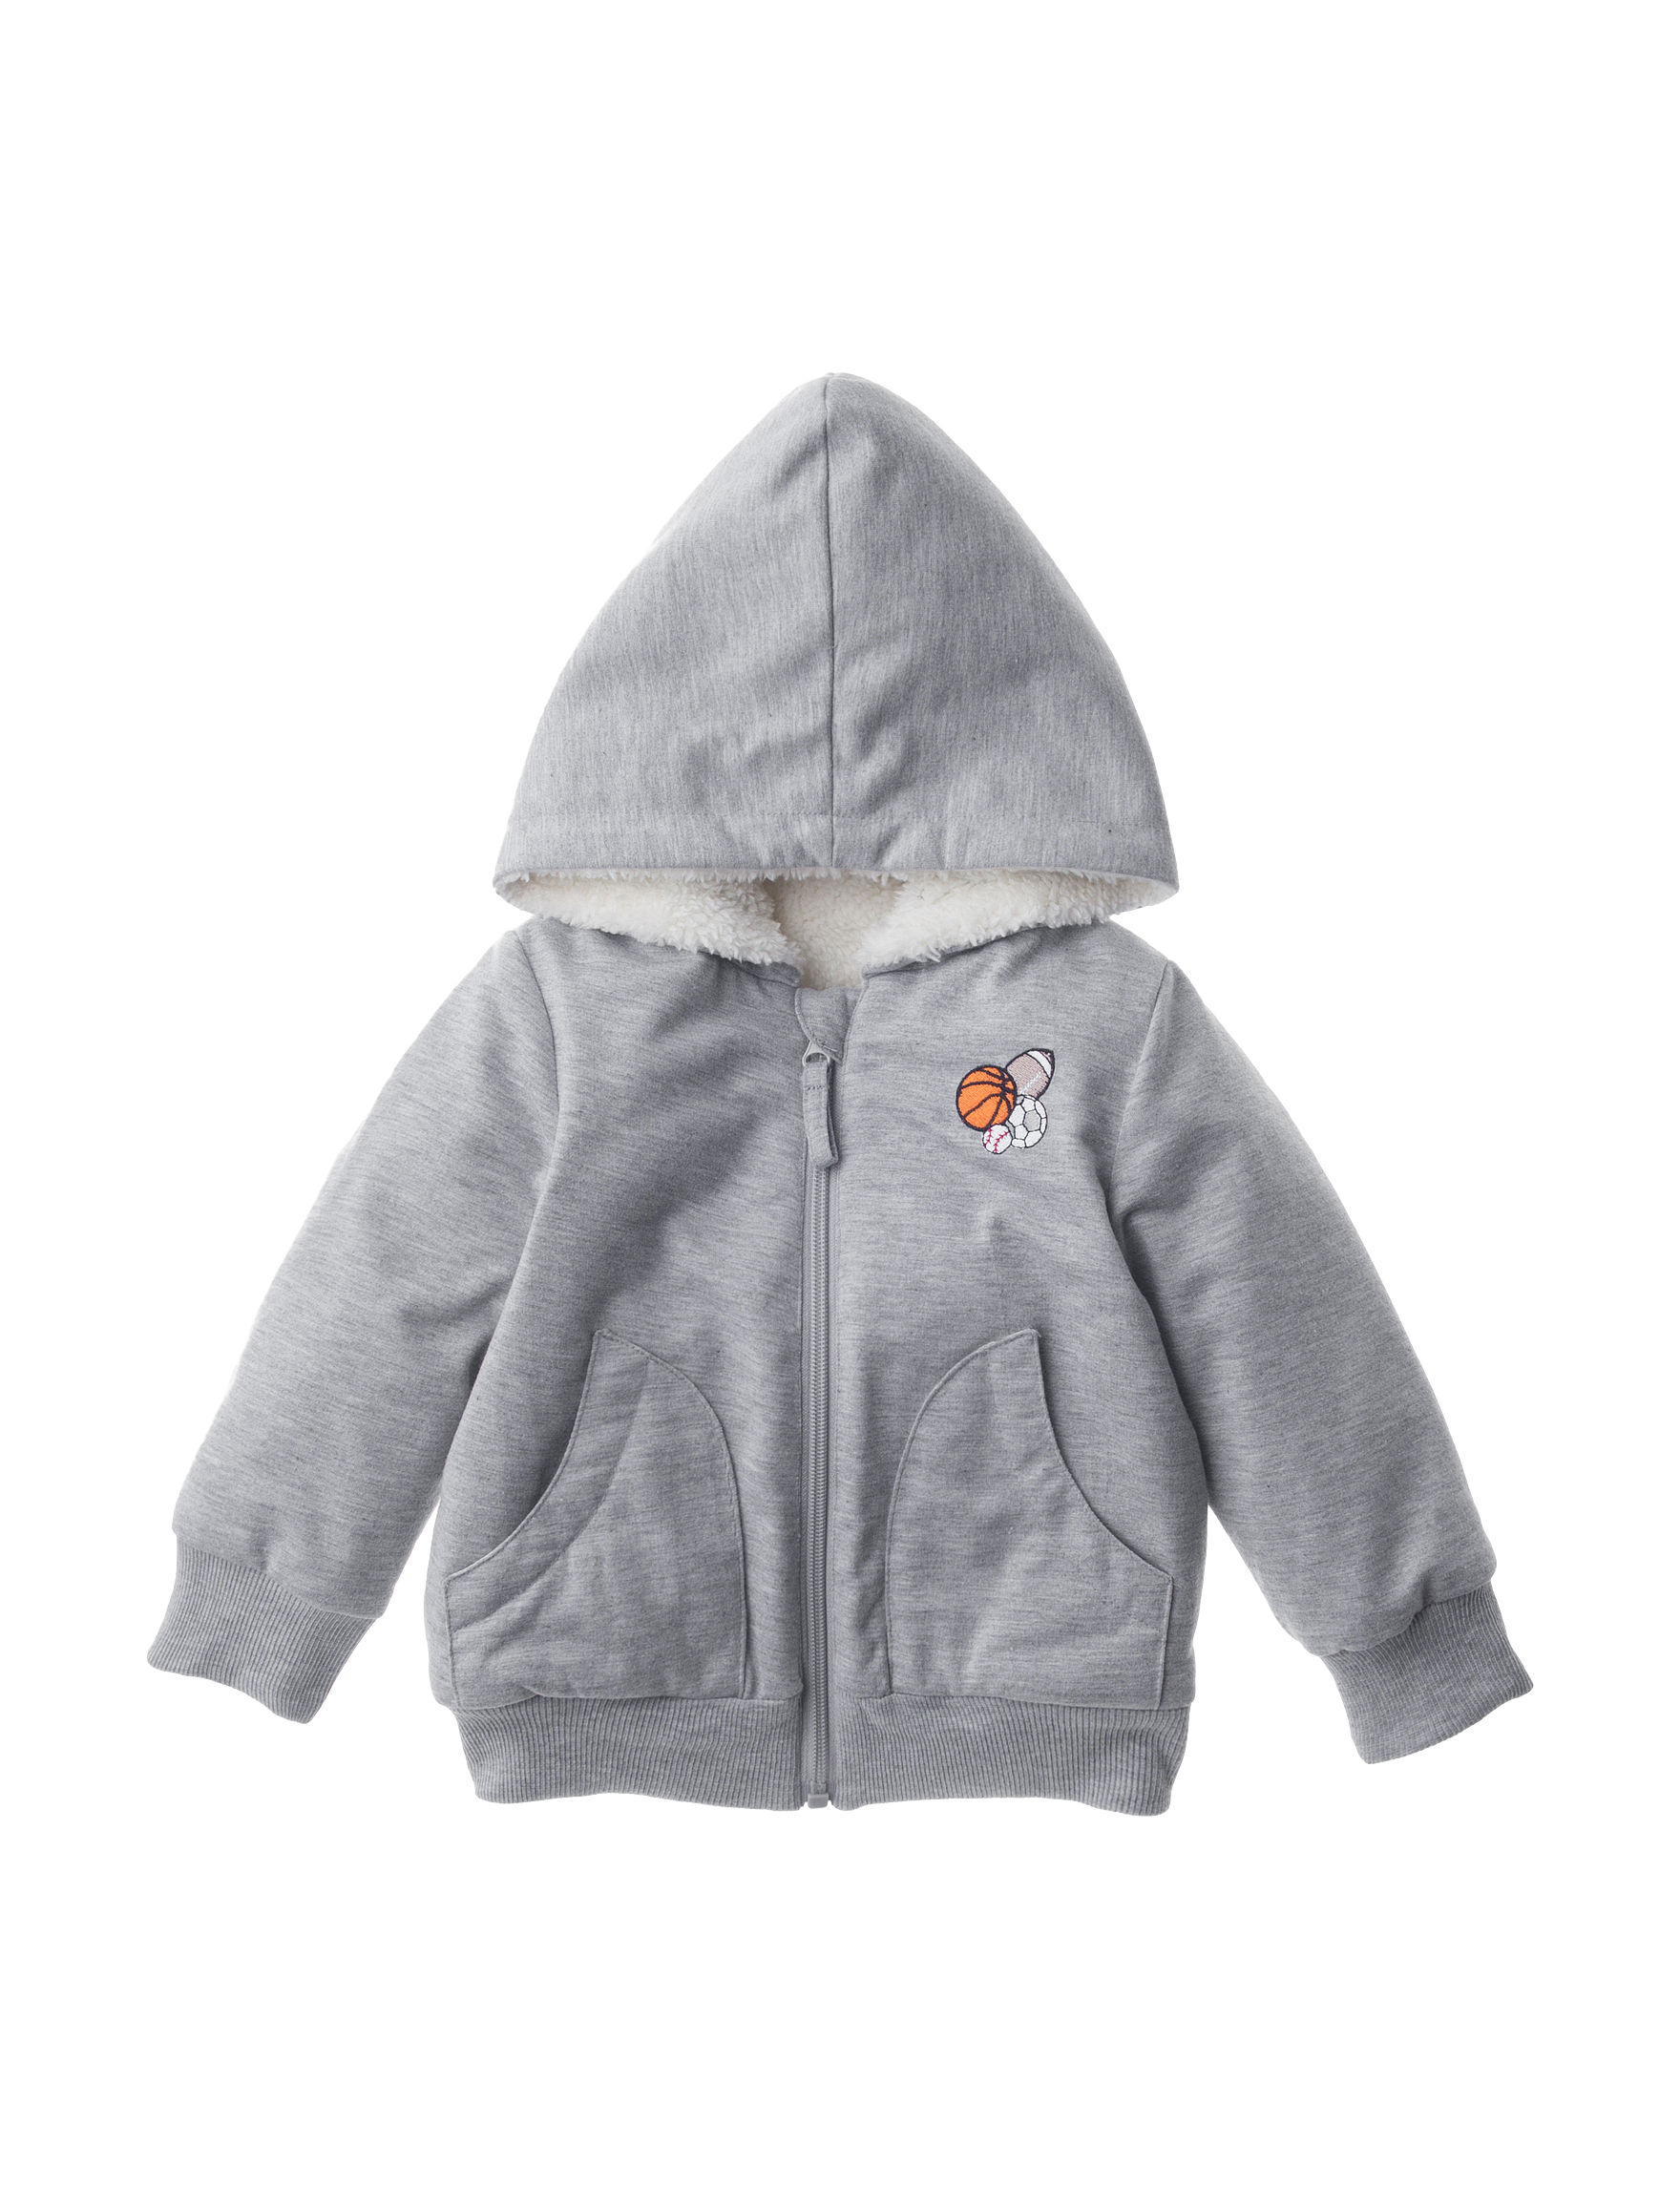 QT Baby Heather Grey Lightweight Jackets & Blazers